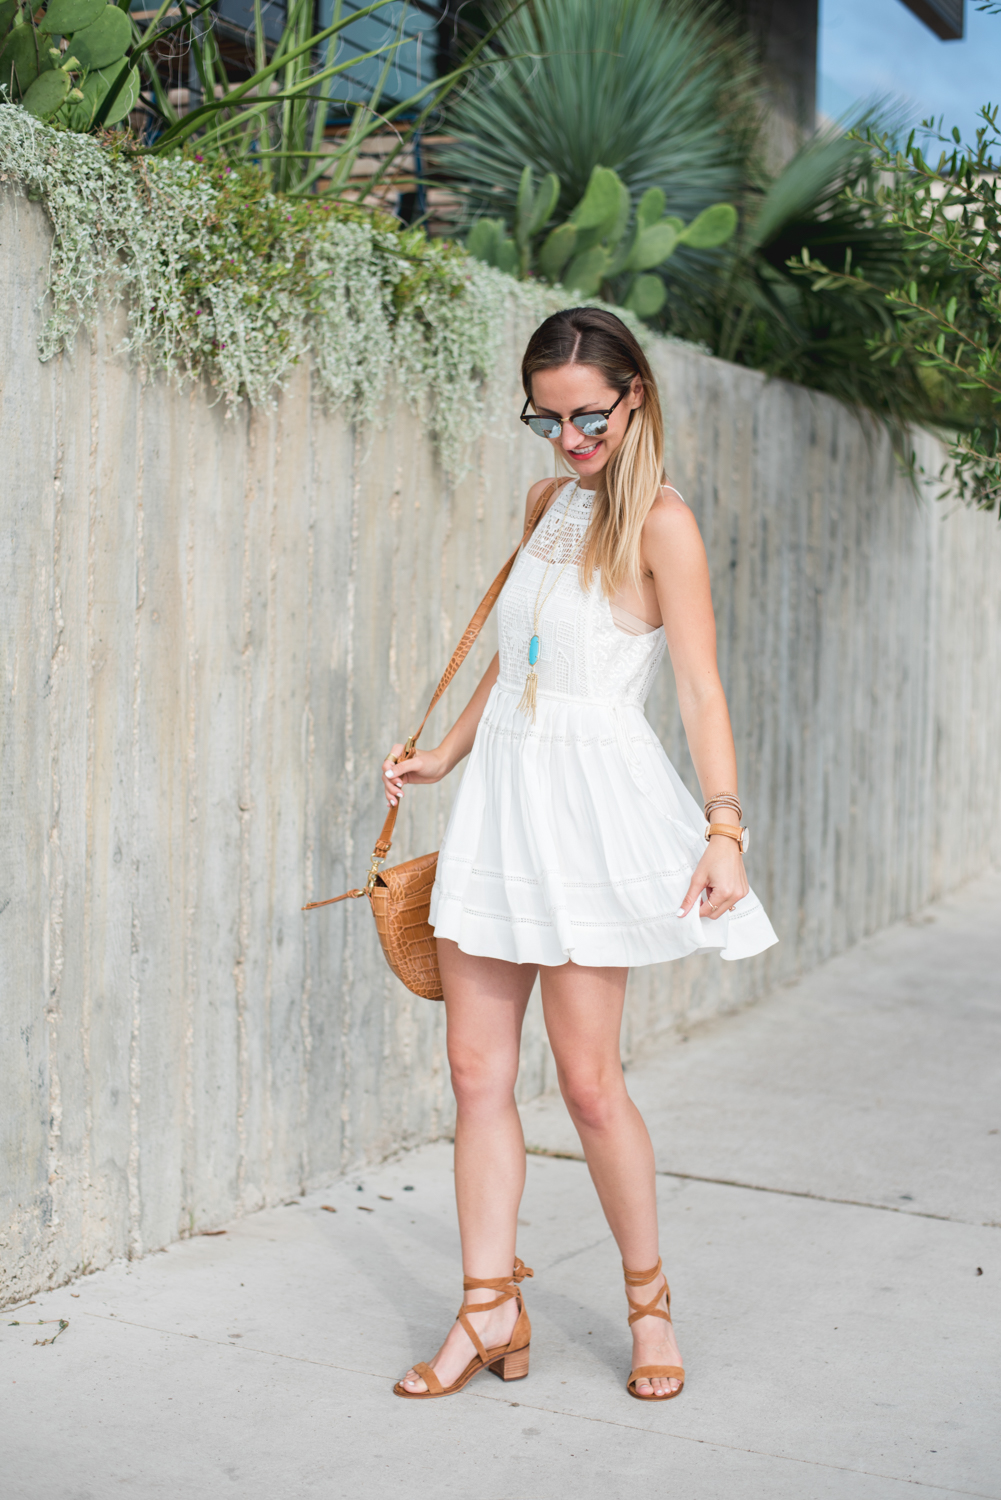 livvyland-blog-olivia-watson-austin-texas-fashion-blogger-free-people-flowy-white-high-neck-crochet-dress-tassel-south-lamar-kathryn-frazer-photography-boho-festival-outfit-2